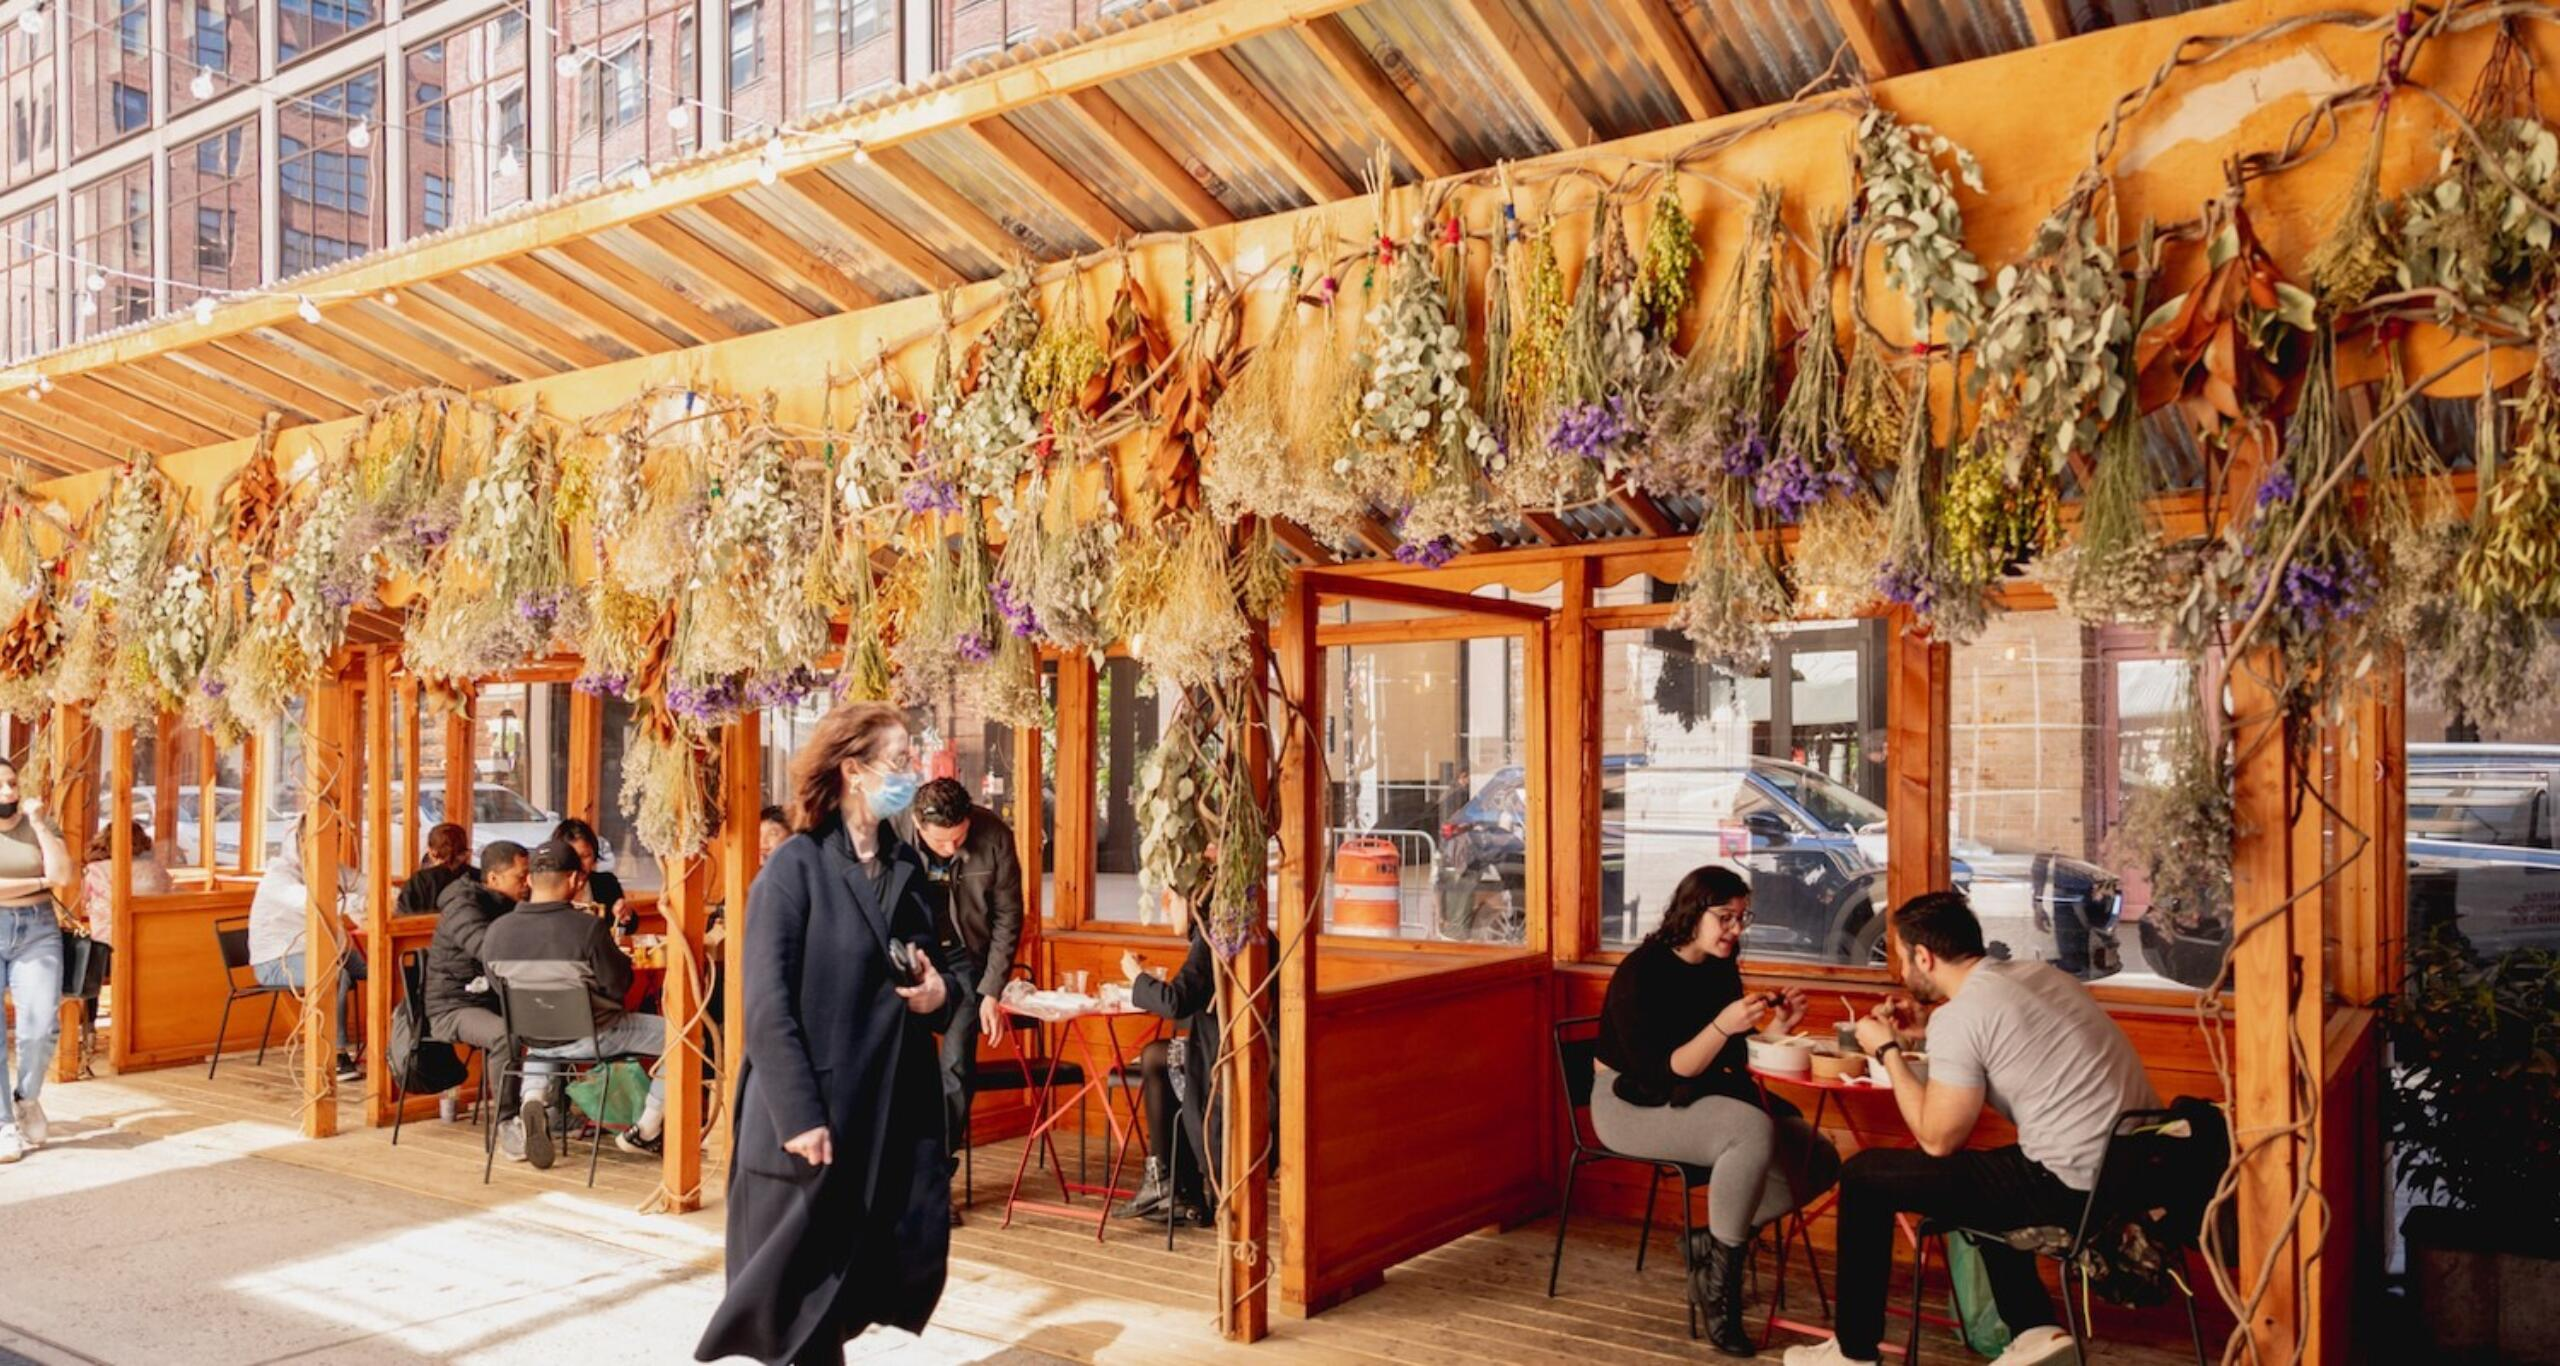 Diners seated at outdoor dining area at Chelsea Market